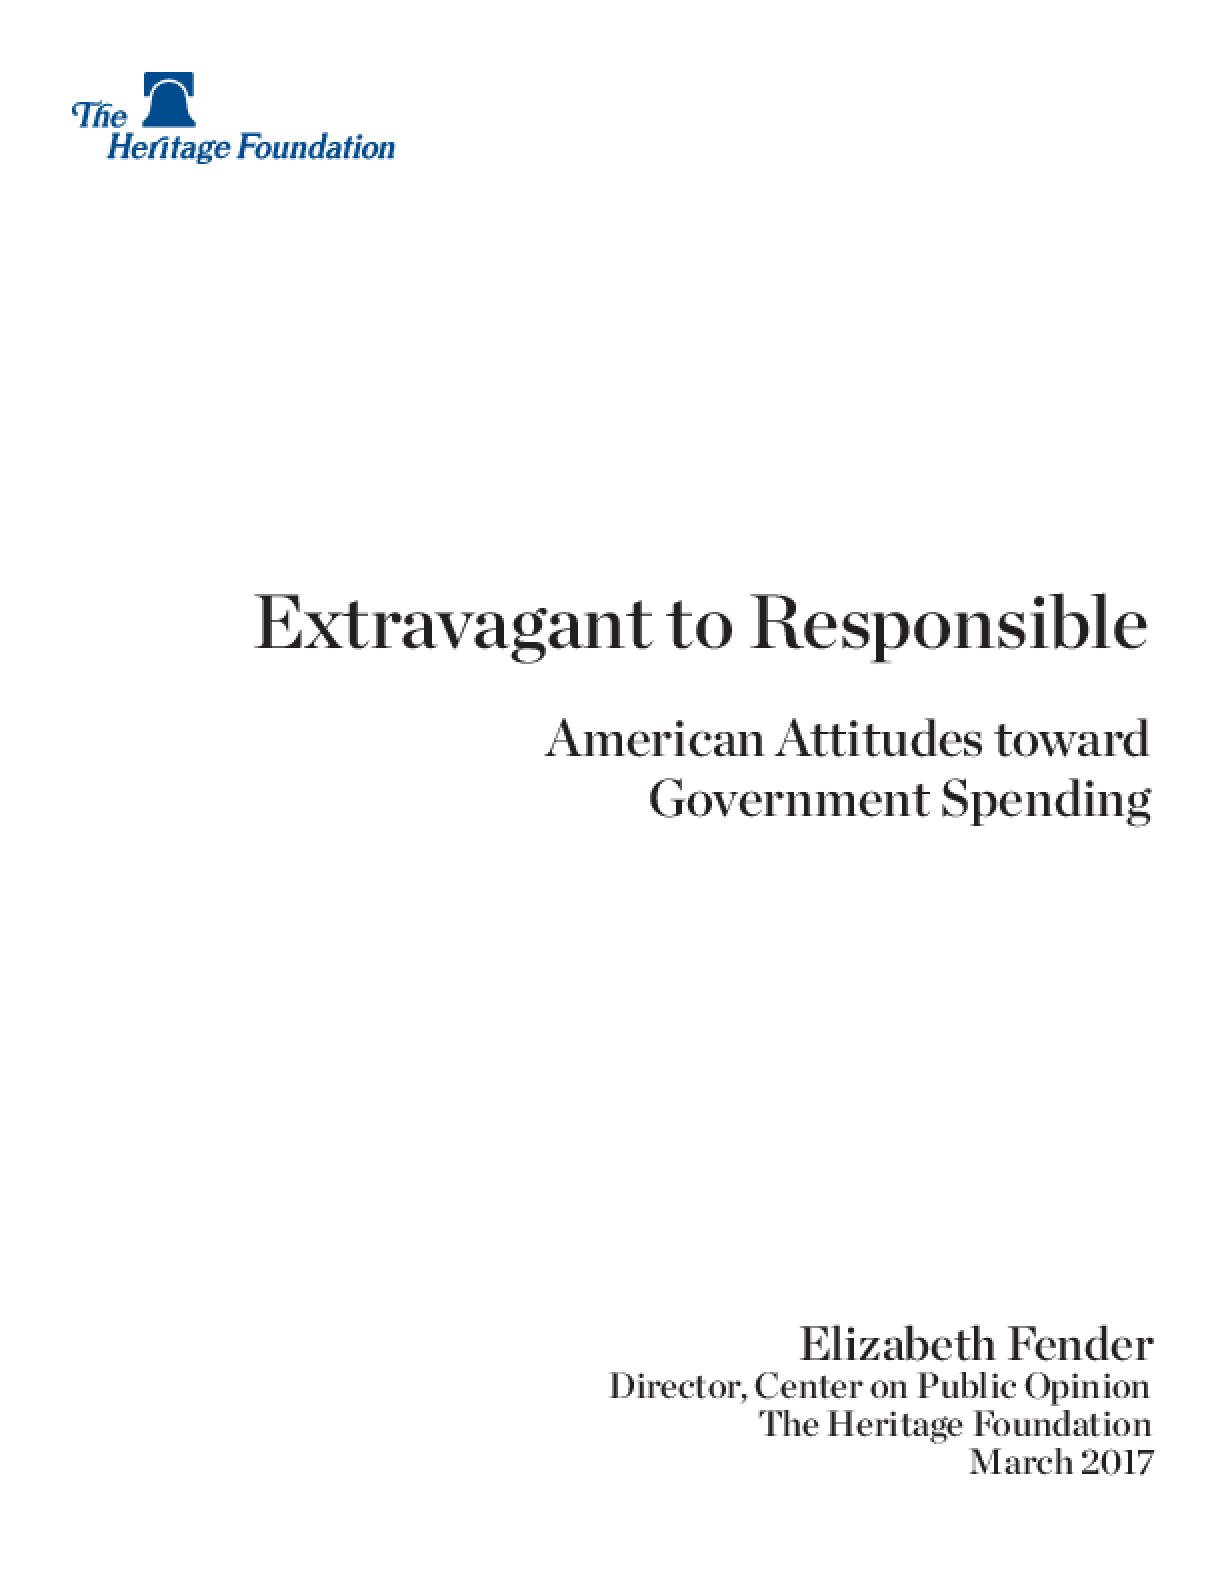 Extravagant to Responsible: American Attitudes towards Government Spending